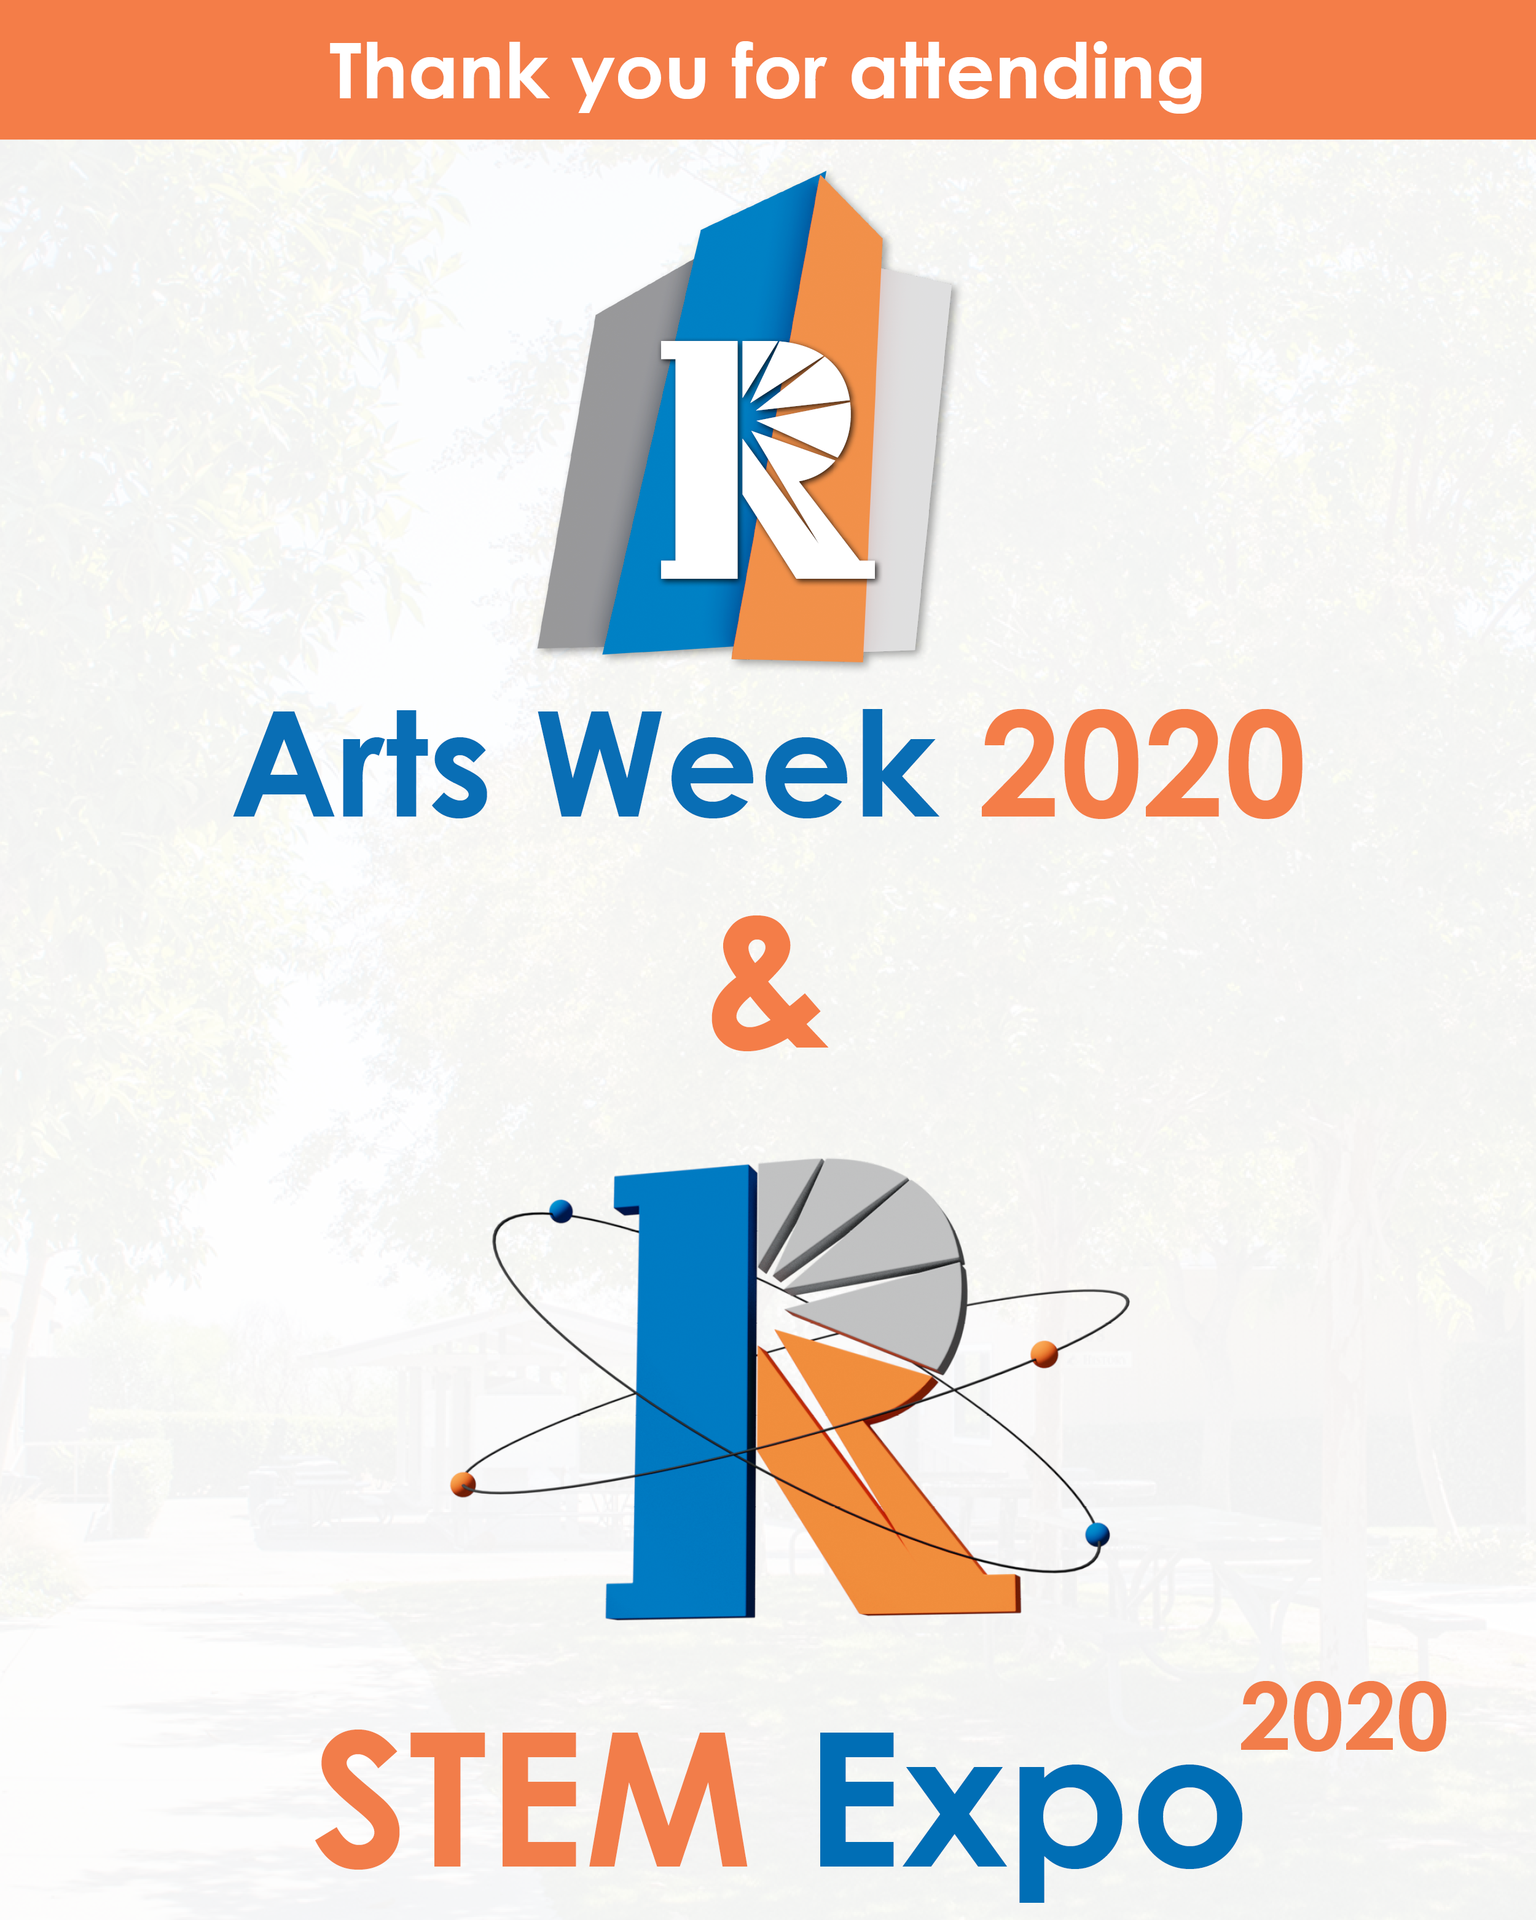 Thank you for attending Arts Week 2020 and STEM Expo 2020